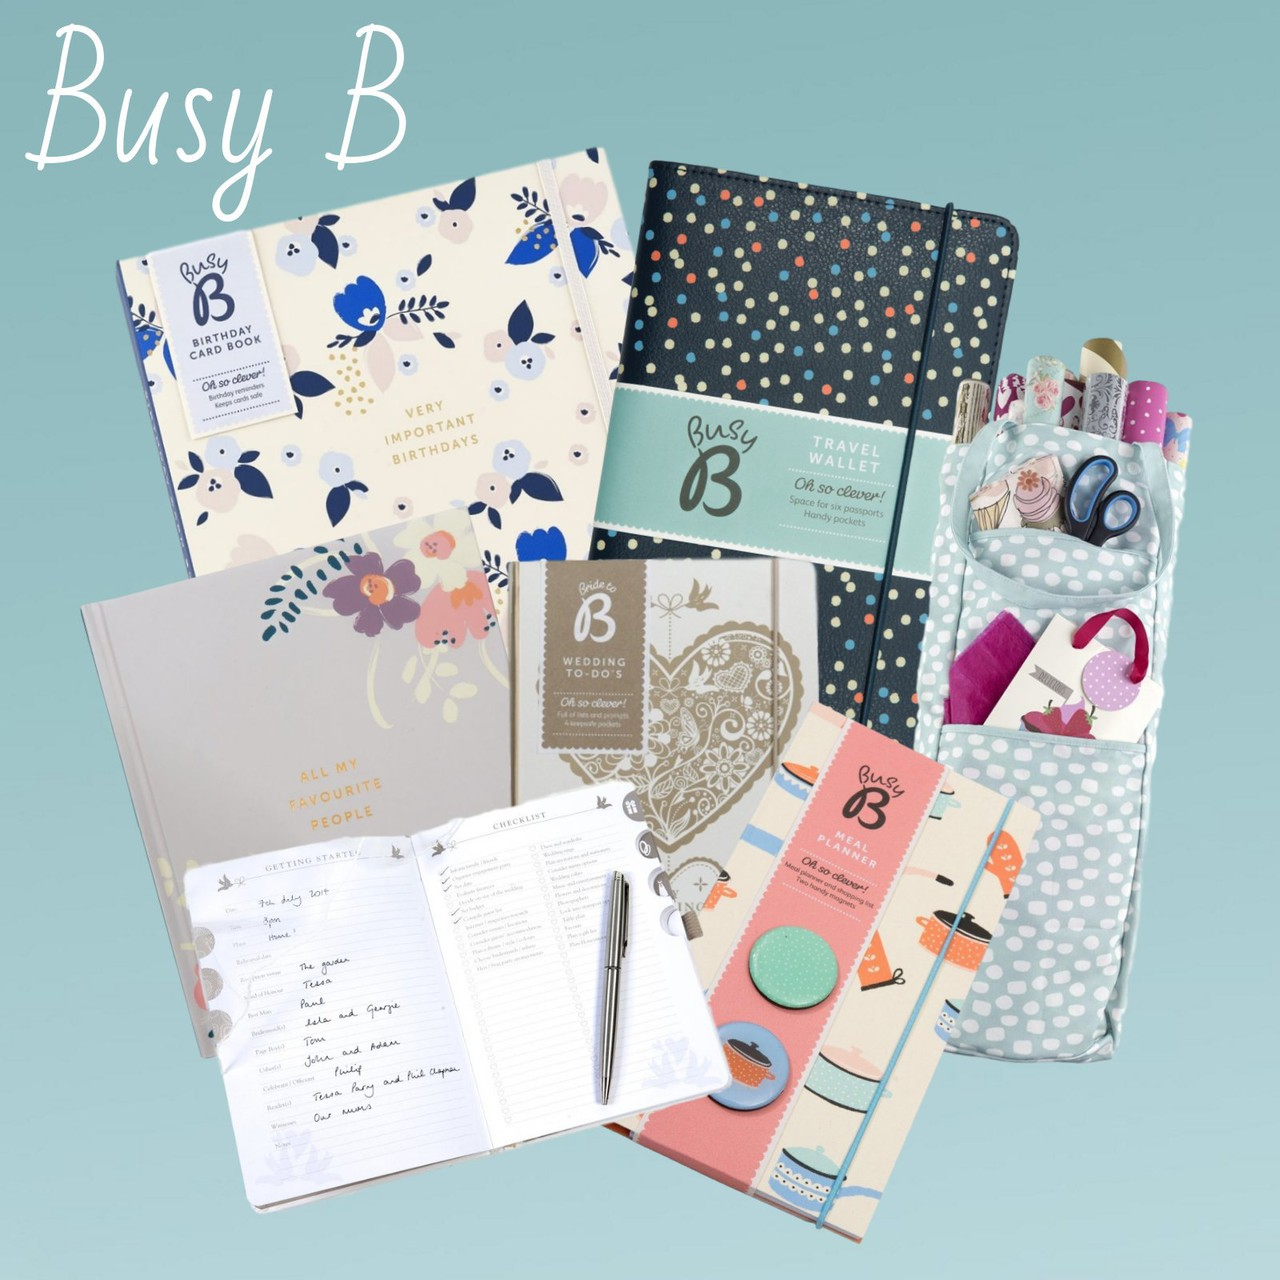 Busy b stationery range including wedding planner